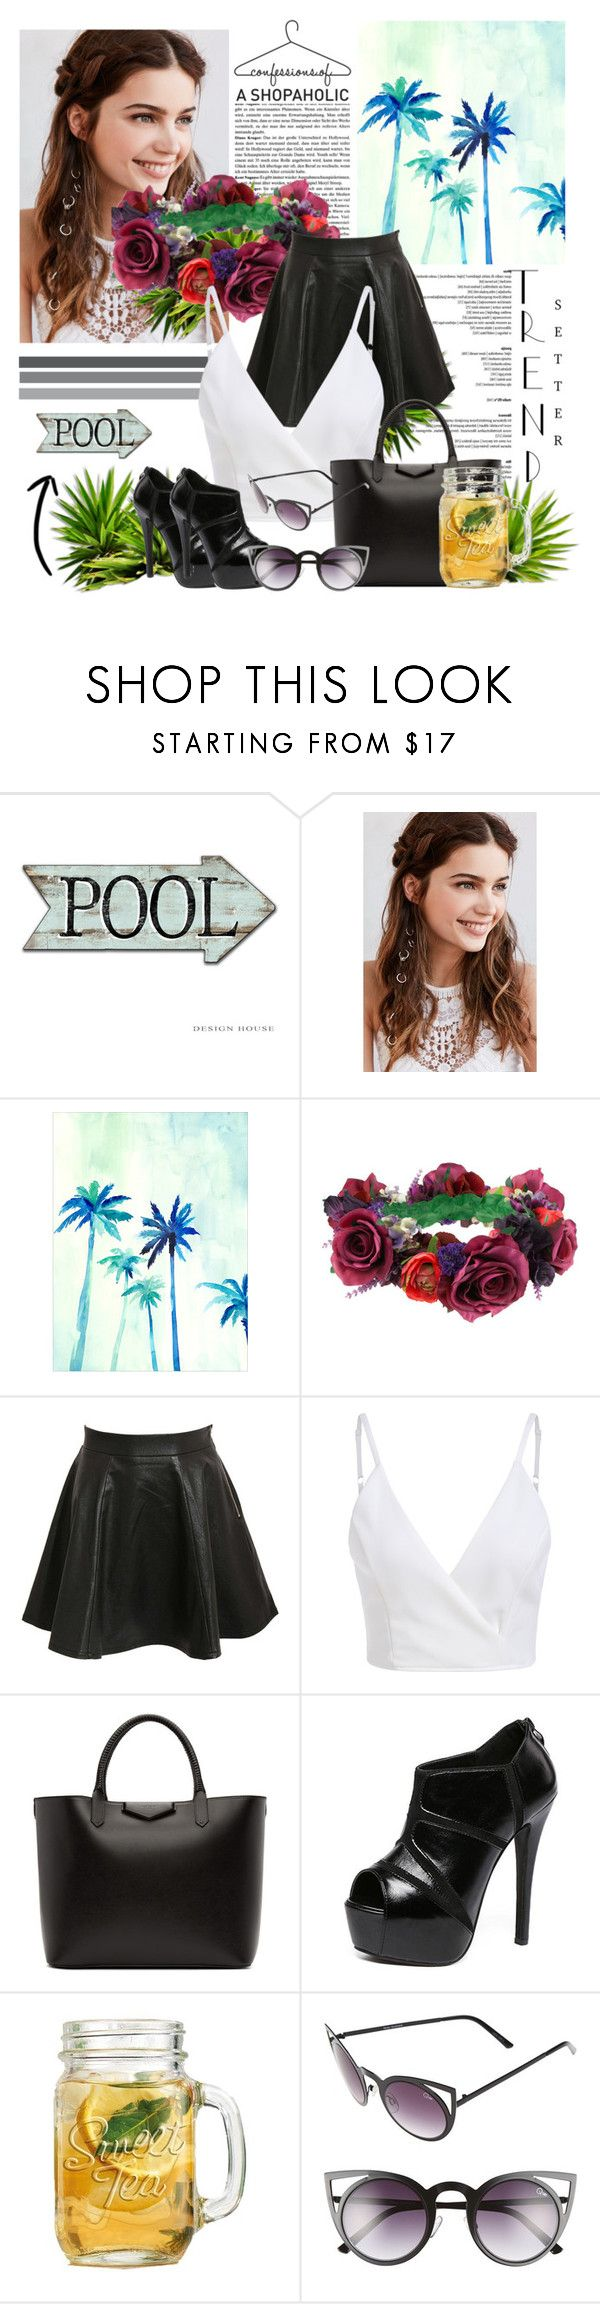 """#summer"" by blogforeverything ❤ liked on Polyvore featuring REGALROSE, Rock 'N Rose, Pilot, Givenchy, WithChic and Quay"